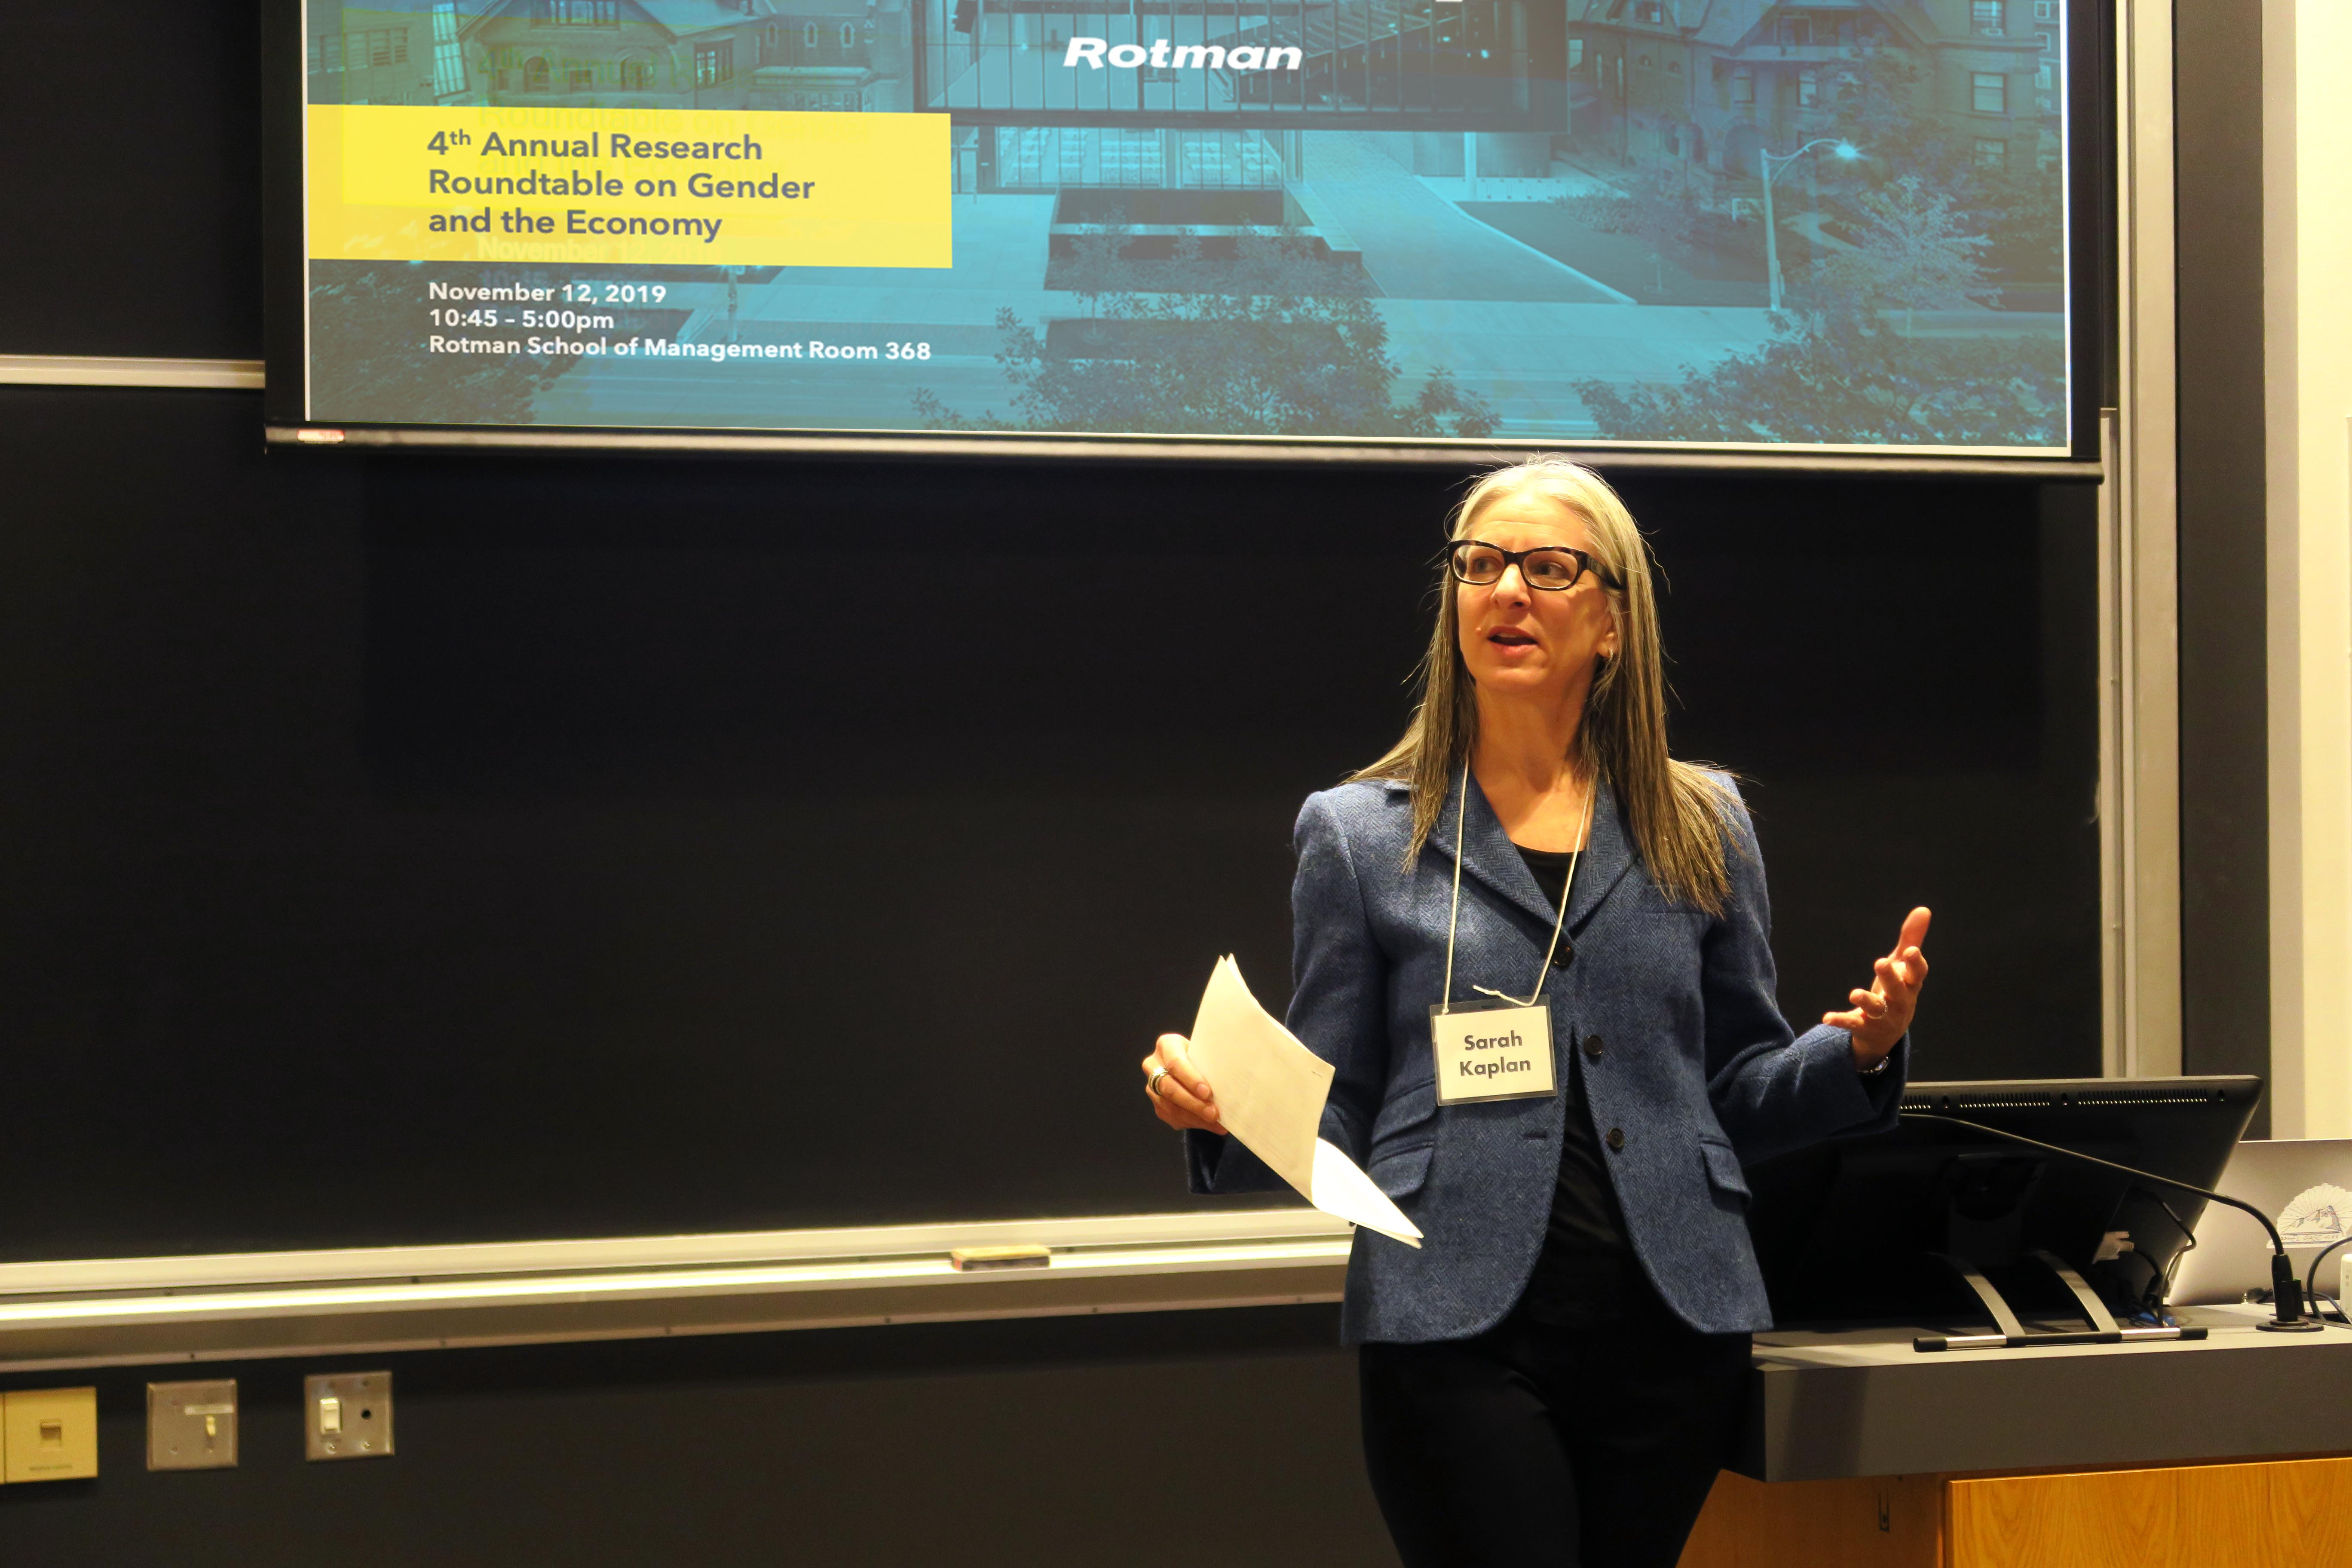 Sarah Kaplan introduces the 4th Annual Research Roundtable